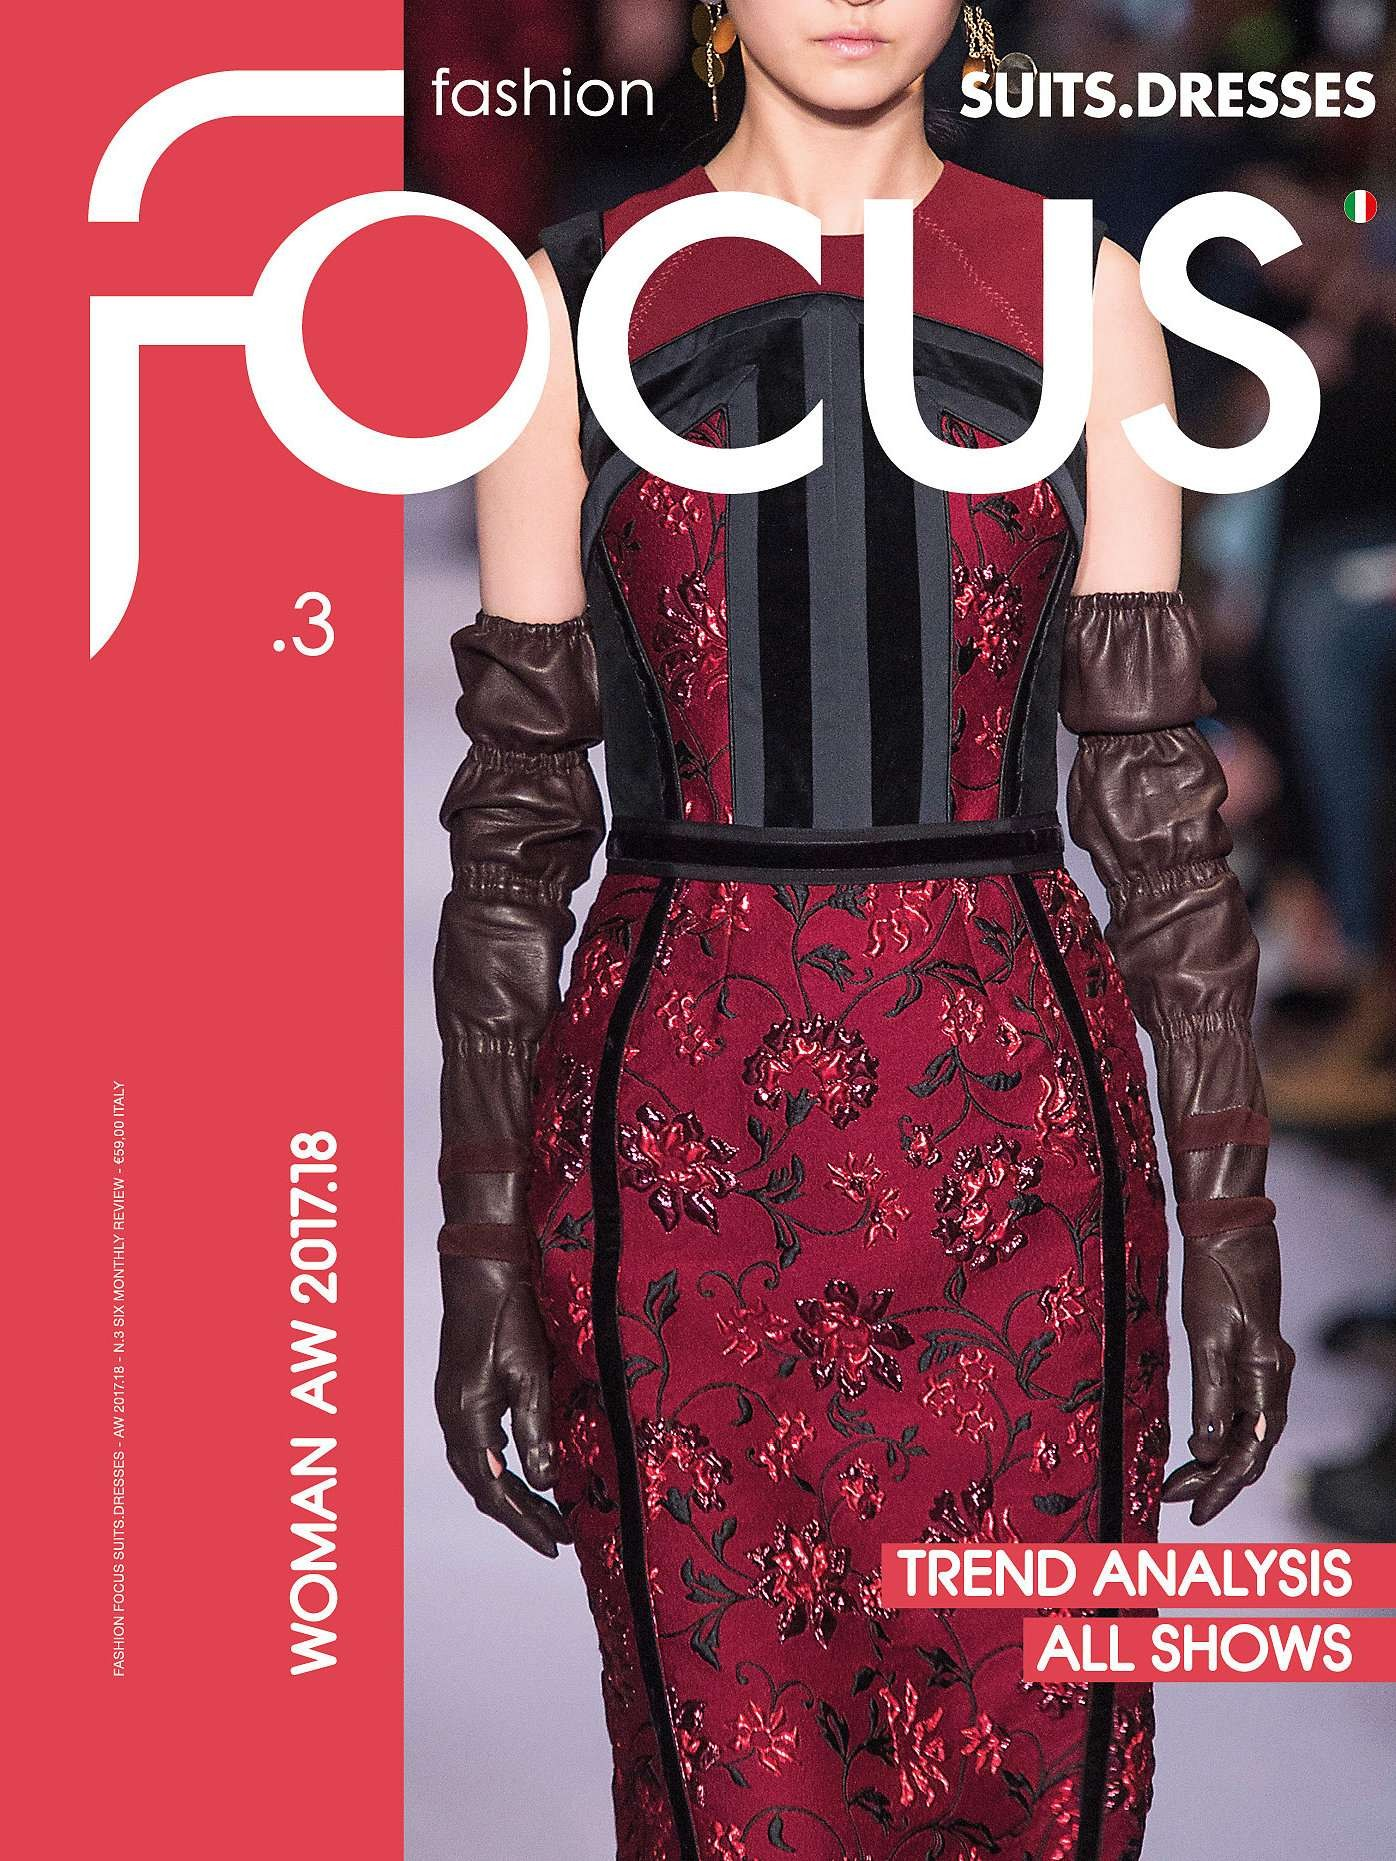 Fashion Focus (Woman) Sets, Dresses & Formals Magazine Subscription S/S & A/W